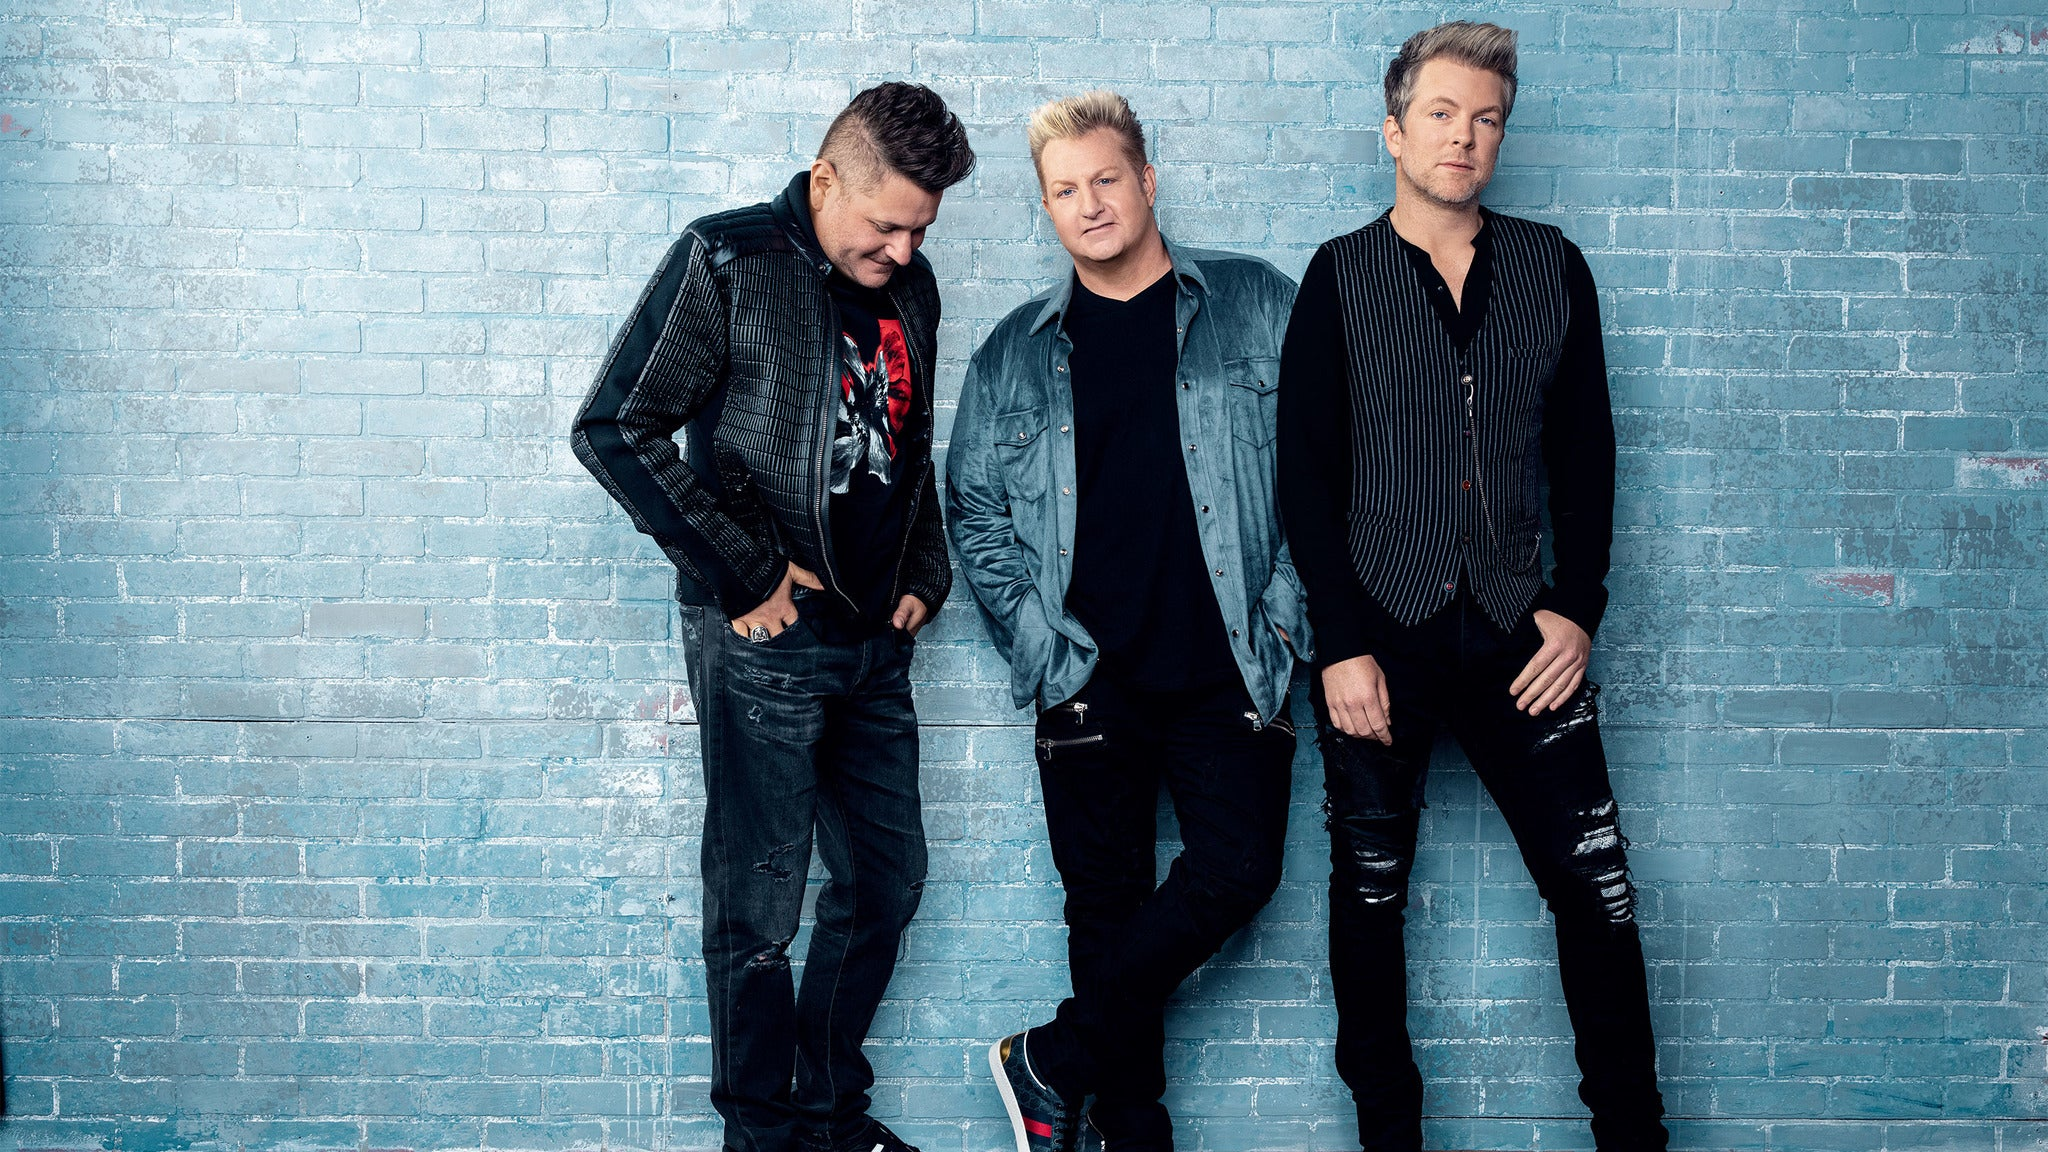 Rascal Flatts [CANCELLED] at DTE Energy Music Theatre